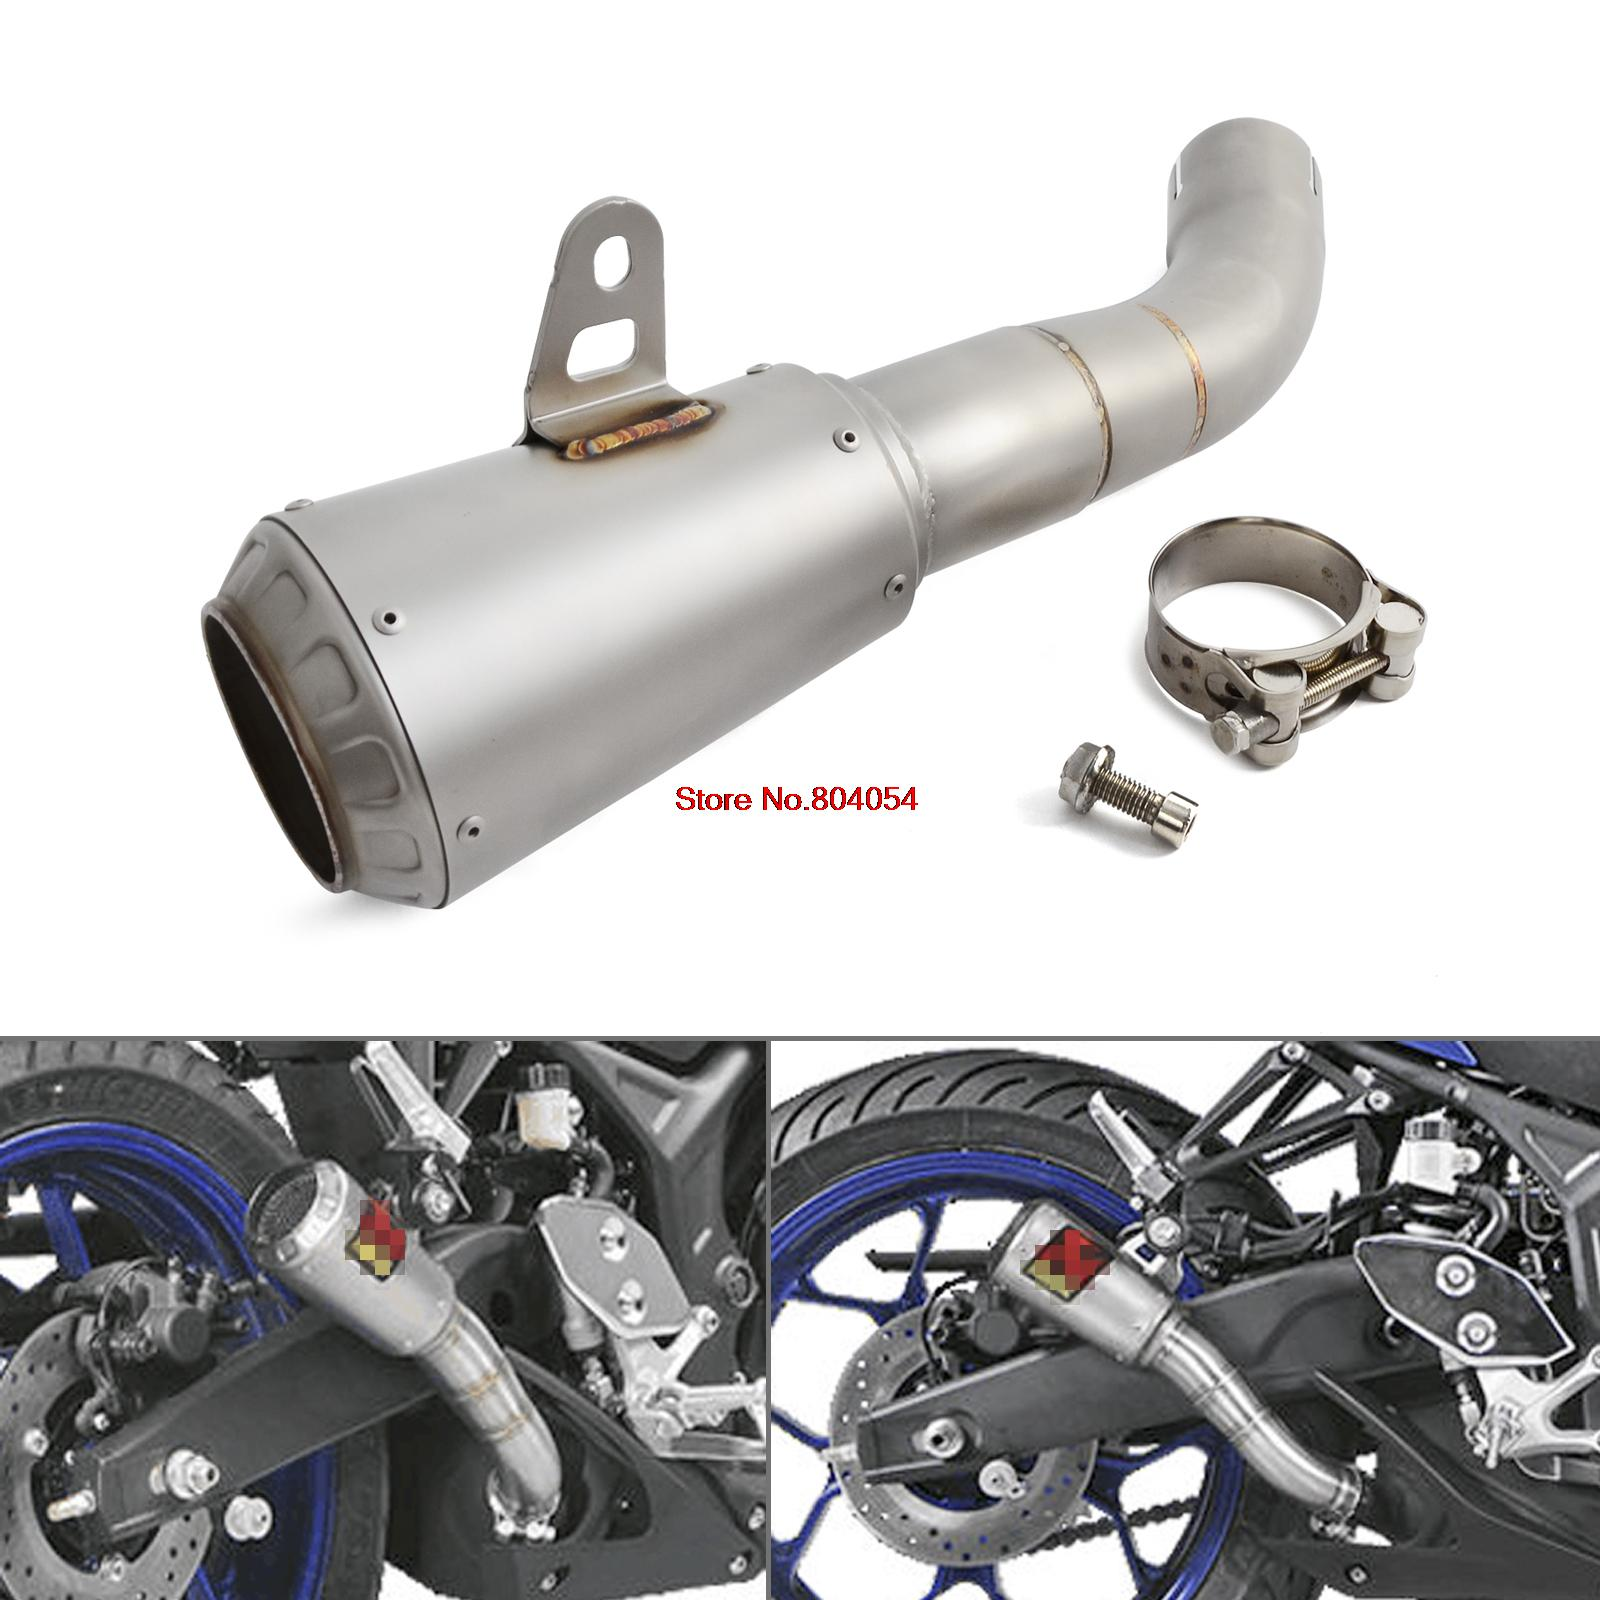 H2CNC Motorcycle Parts Stainless Steel Slip On Exhaust For Yamaha YZF-R3 YZF-R25 MT-03 MT03 2015 2016 2017 2018 YZF R3 R25 universal motorbike akrapovic modified exhaust pipe for yamaha yzf r125 yzf r15 yzf r25 yzf r3 mt 02 mt 25 yzf r1 r1m mt01 09 07